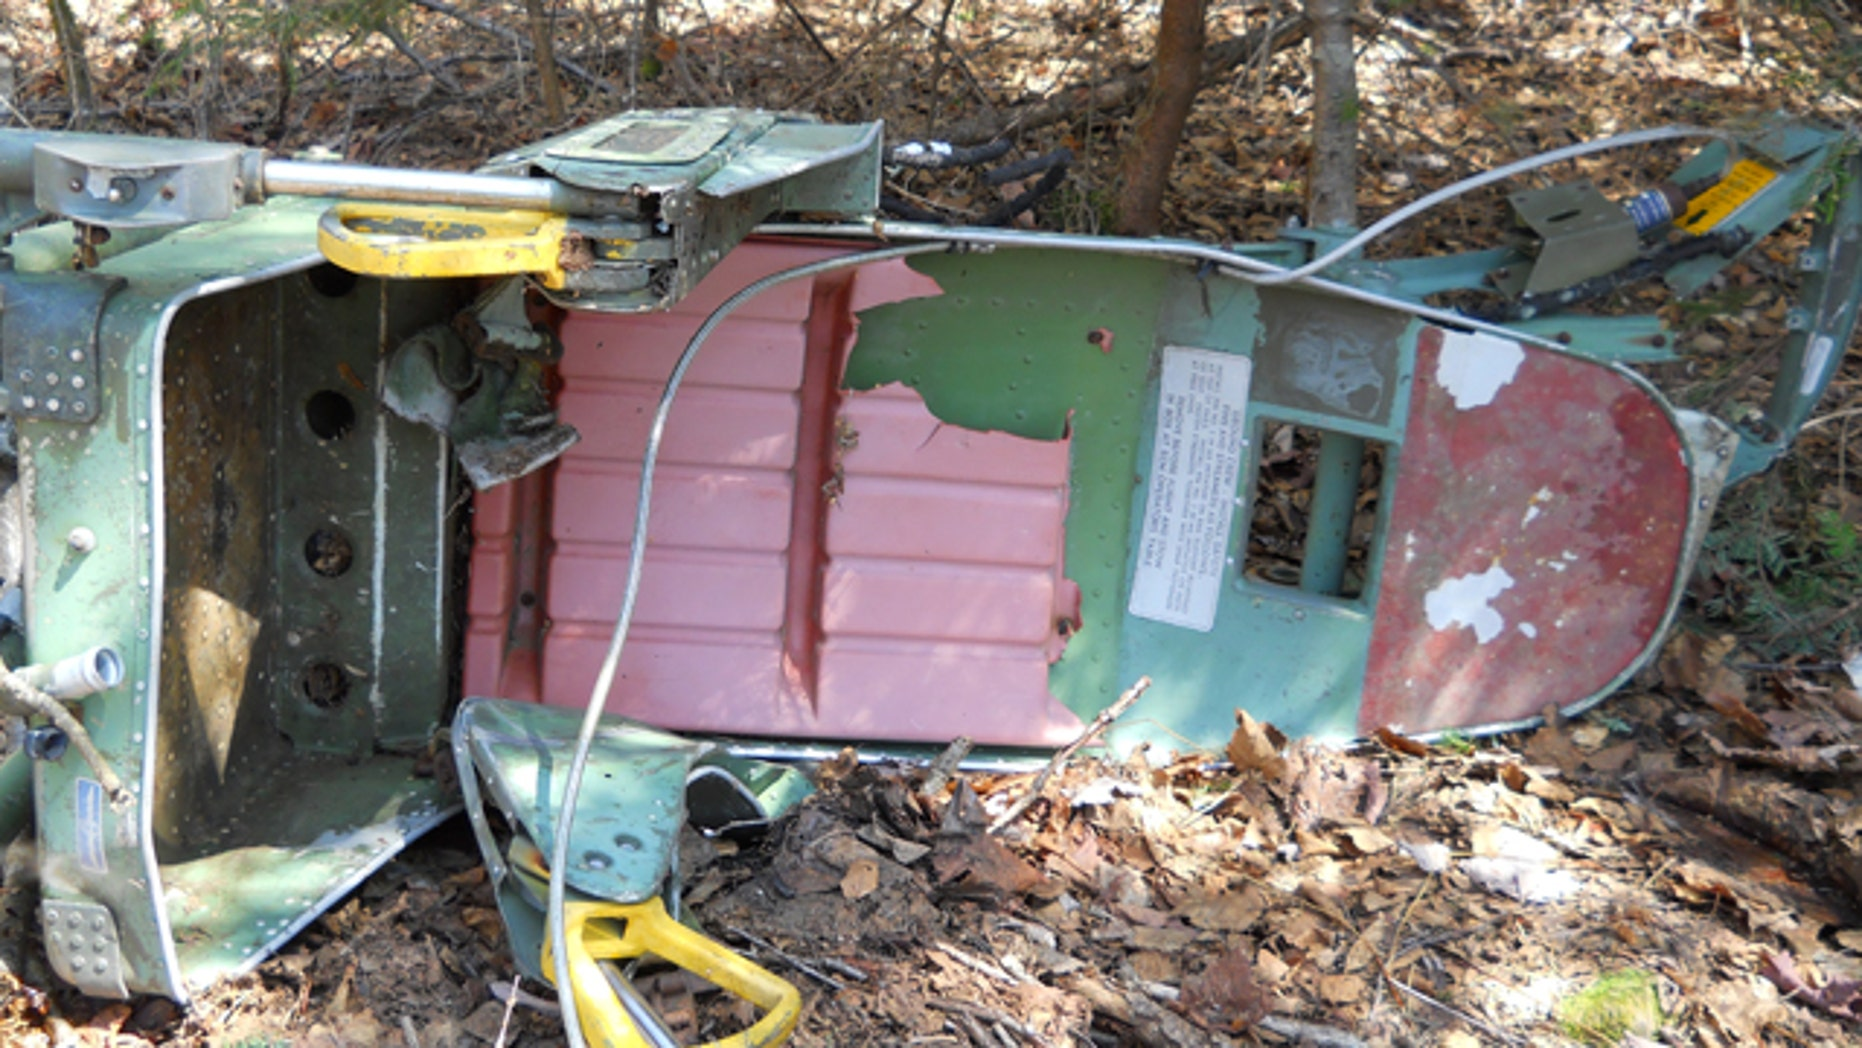 May 17, 2012: A photo provided by the Maine Forest Service shows a B-52 bomber ejection seat found by Forest Ranger Bruce Reed near Greenville, Maine.